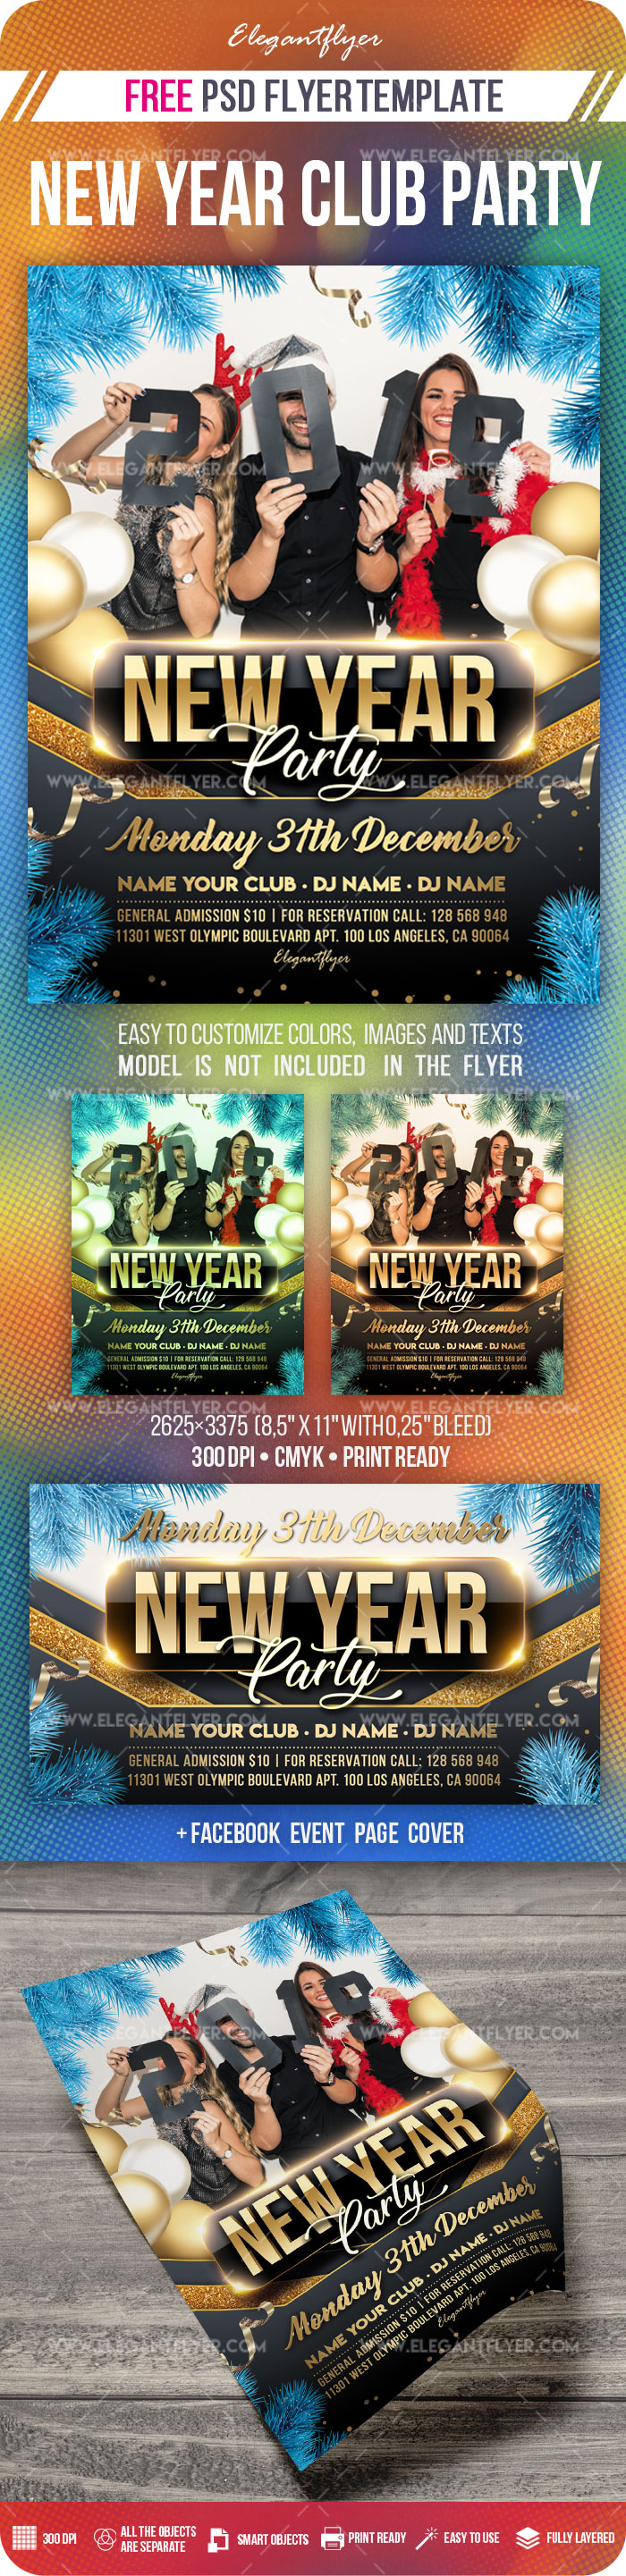 New Year Party Free Flyer PSD Mockup